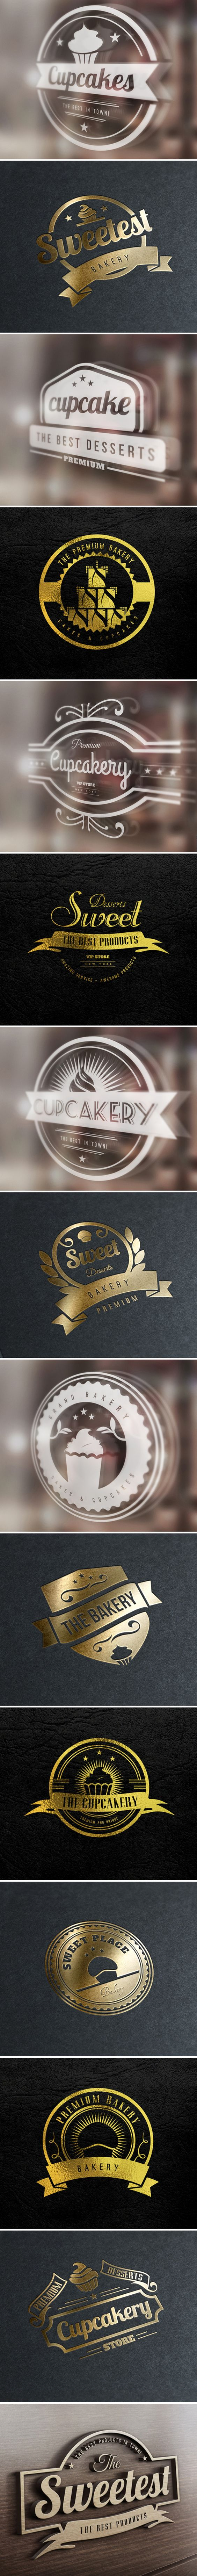 15 Bakery Cupcakes and Cakes Labels Badges Logos by Design District, via Behance